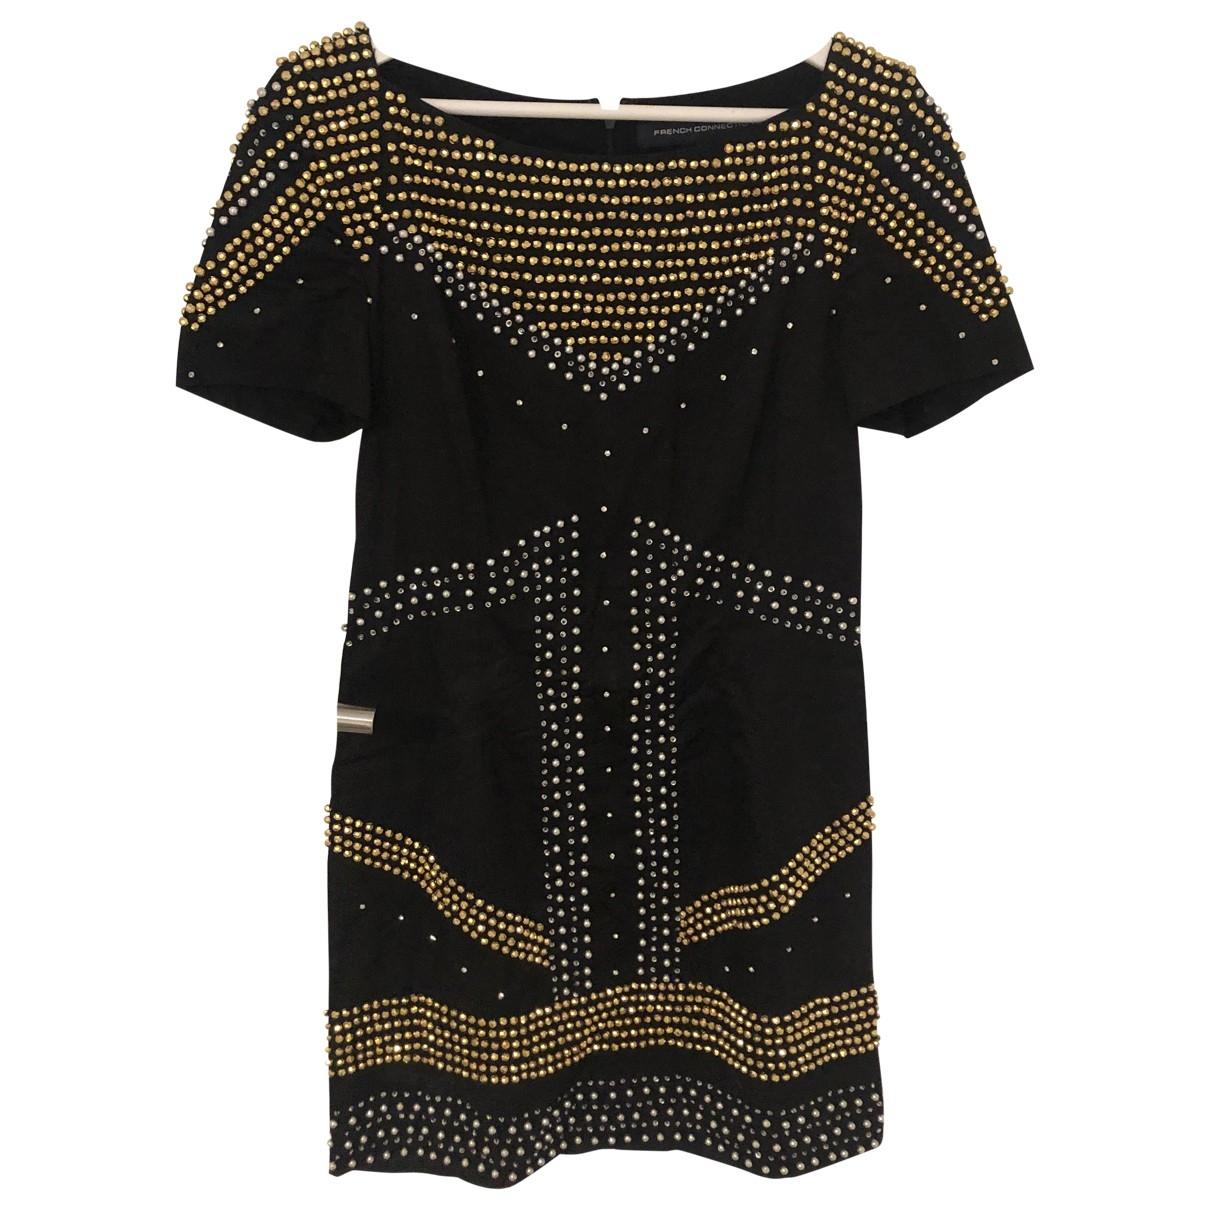 French Connection \N Black Cotton - elasthane dress for Women 10 UK